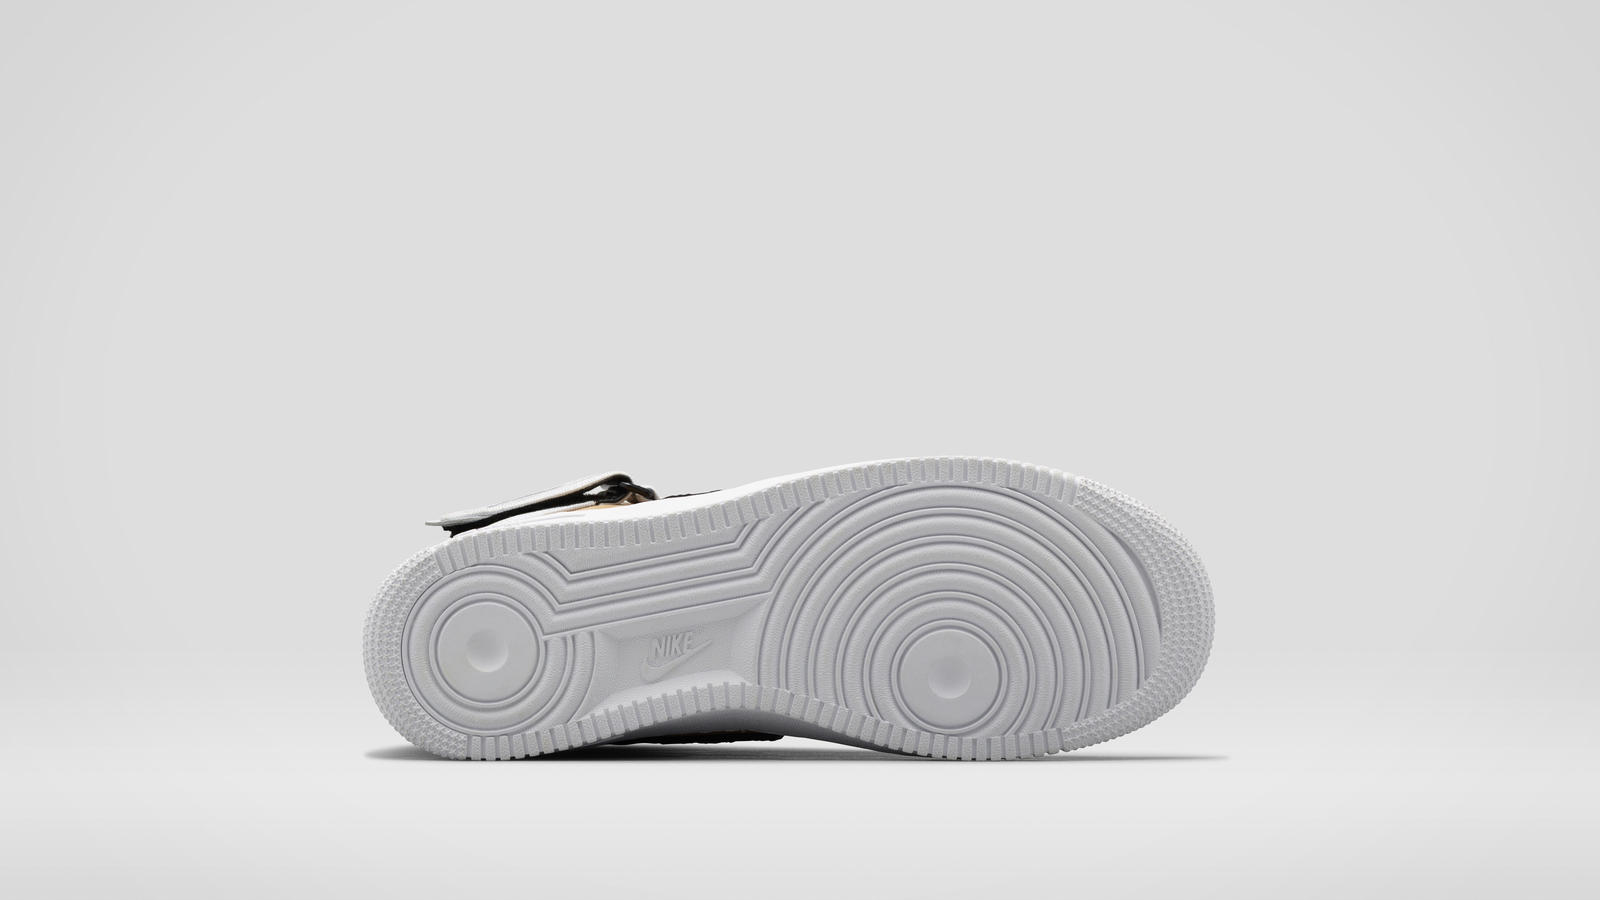 b9_app-air_force_1_high_tisci_tan_669919_200-right_outsole-6743